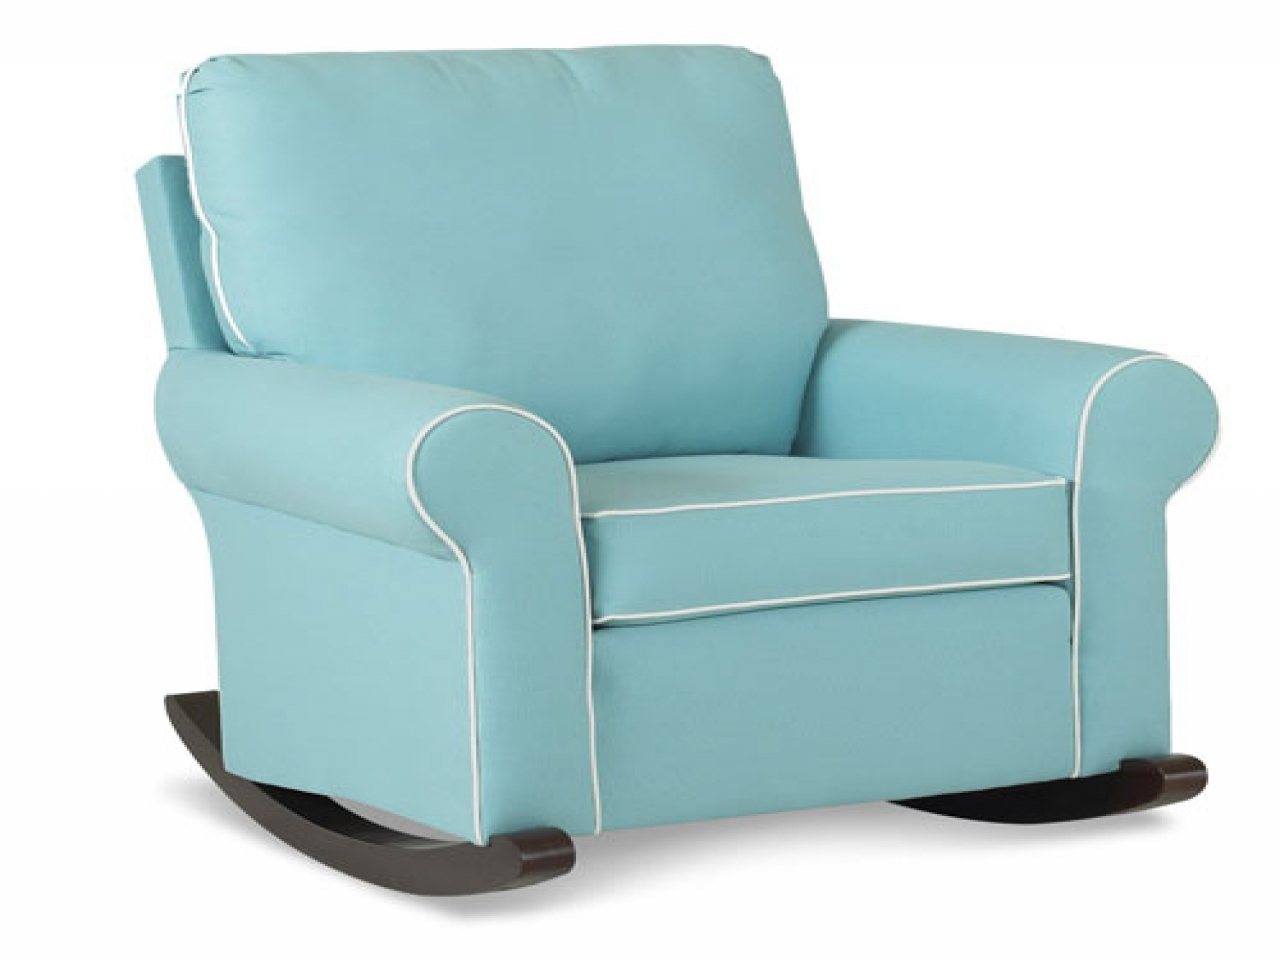 Sofas Center Rocking Sofa Chair Ba Chairs Modern For Nursery With Rocking Sofa Chairs (Image 12 of 15)